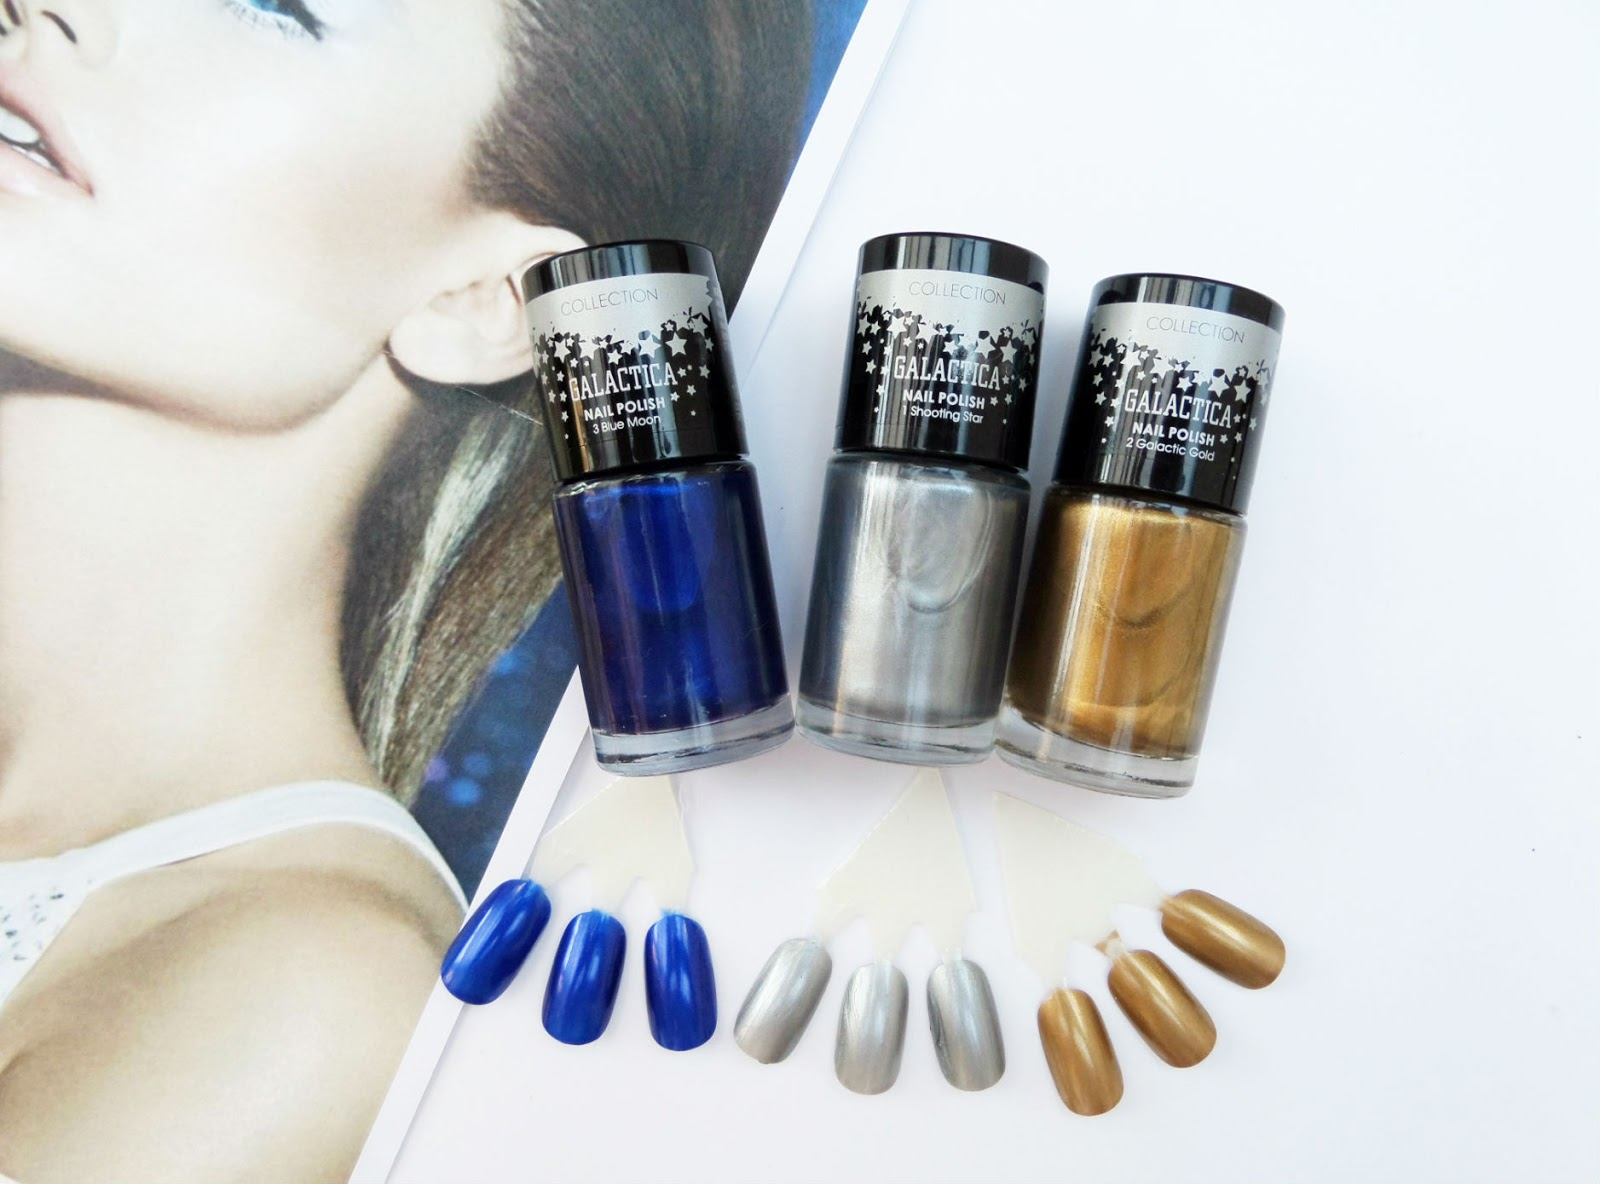 The New Collection Cosmetics Galactica Range Nails